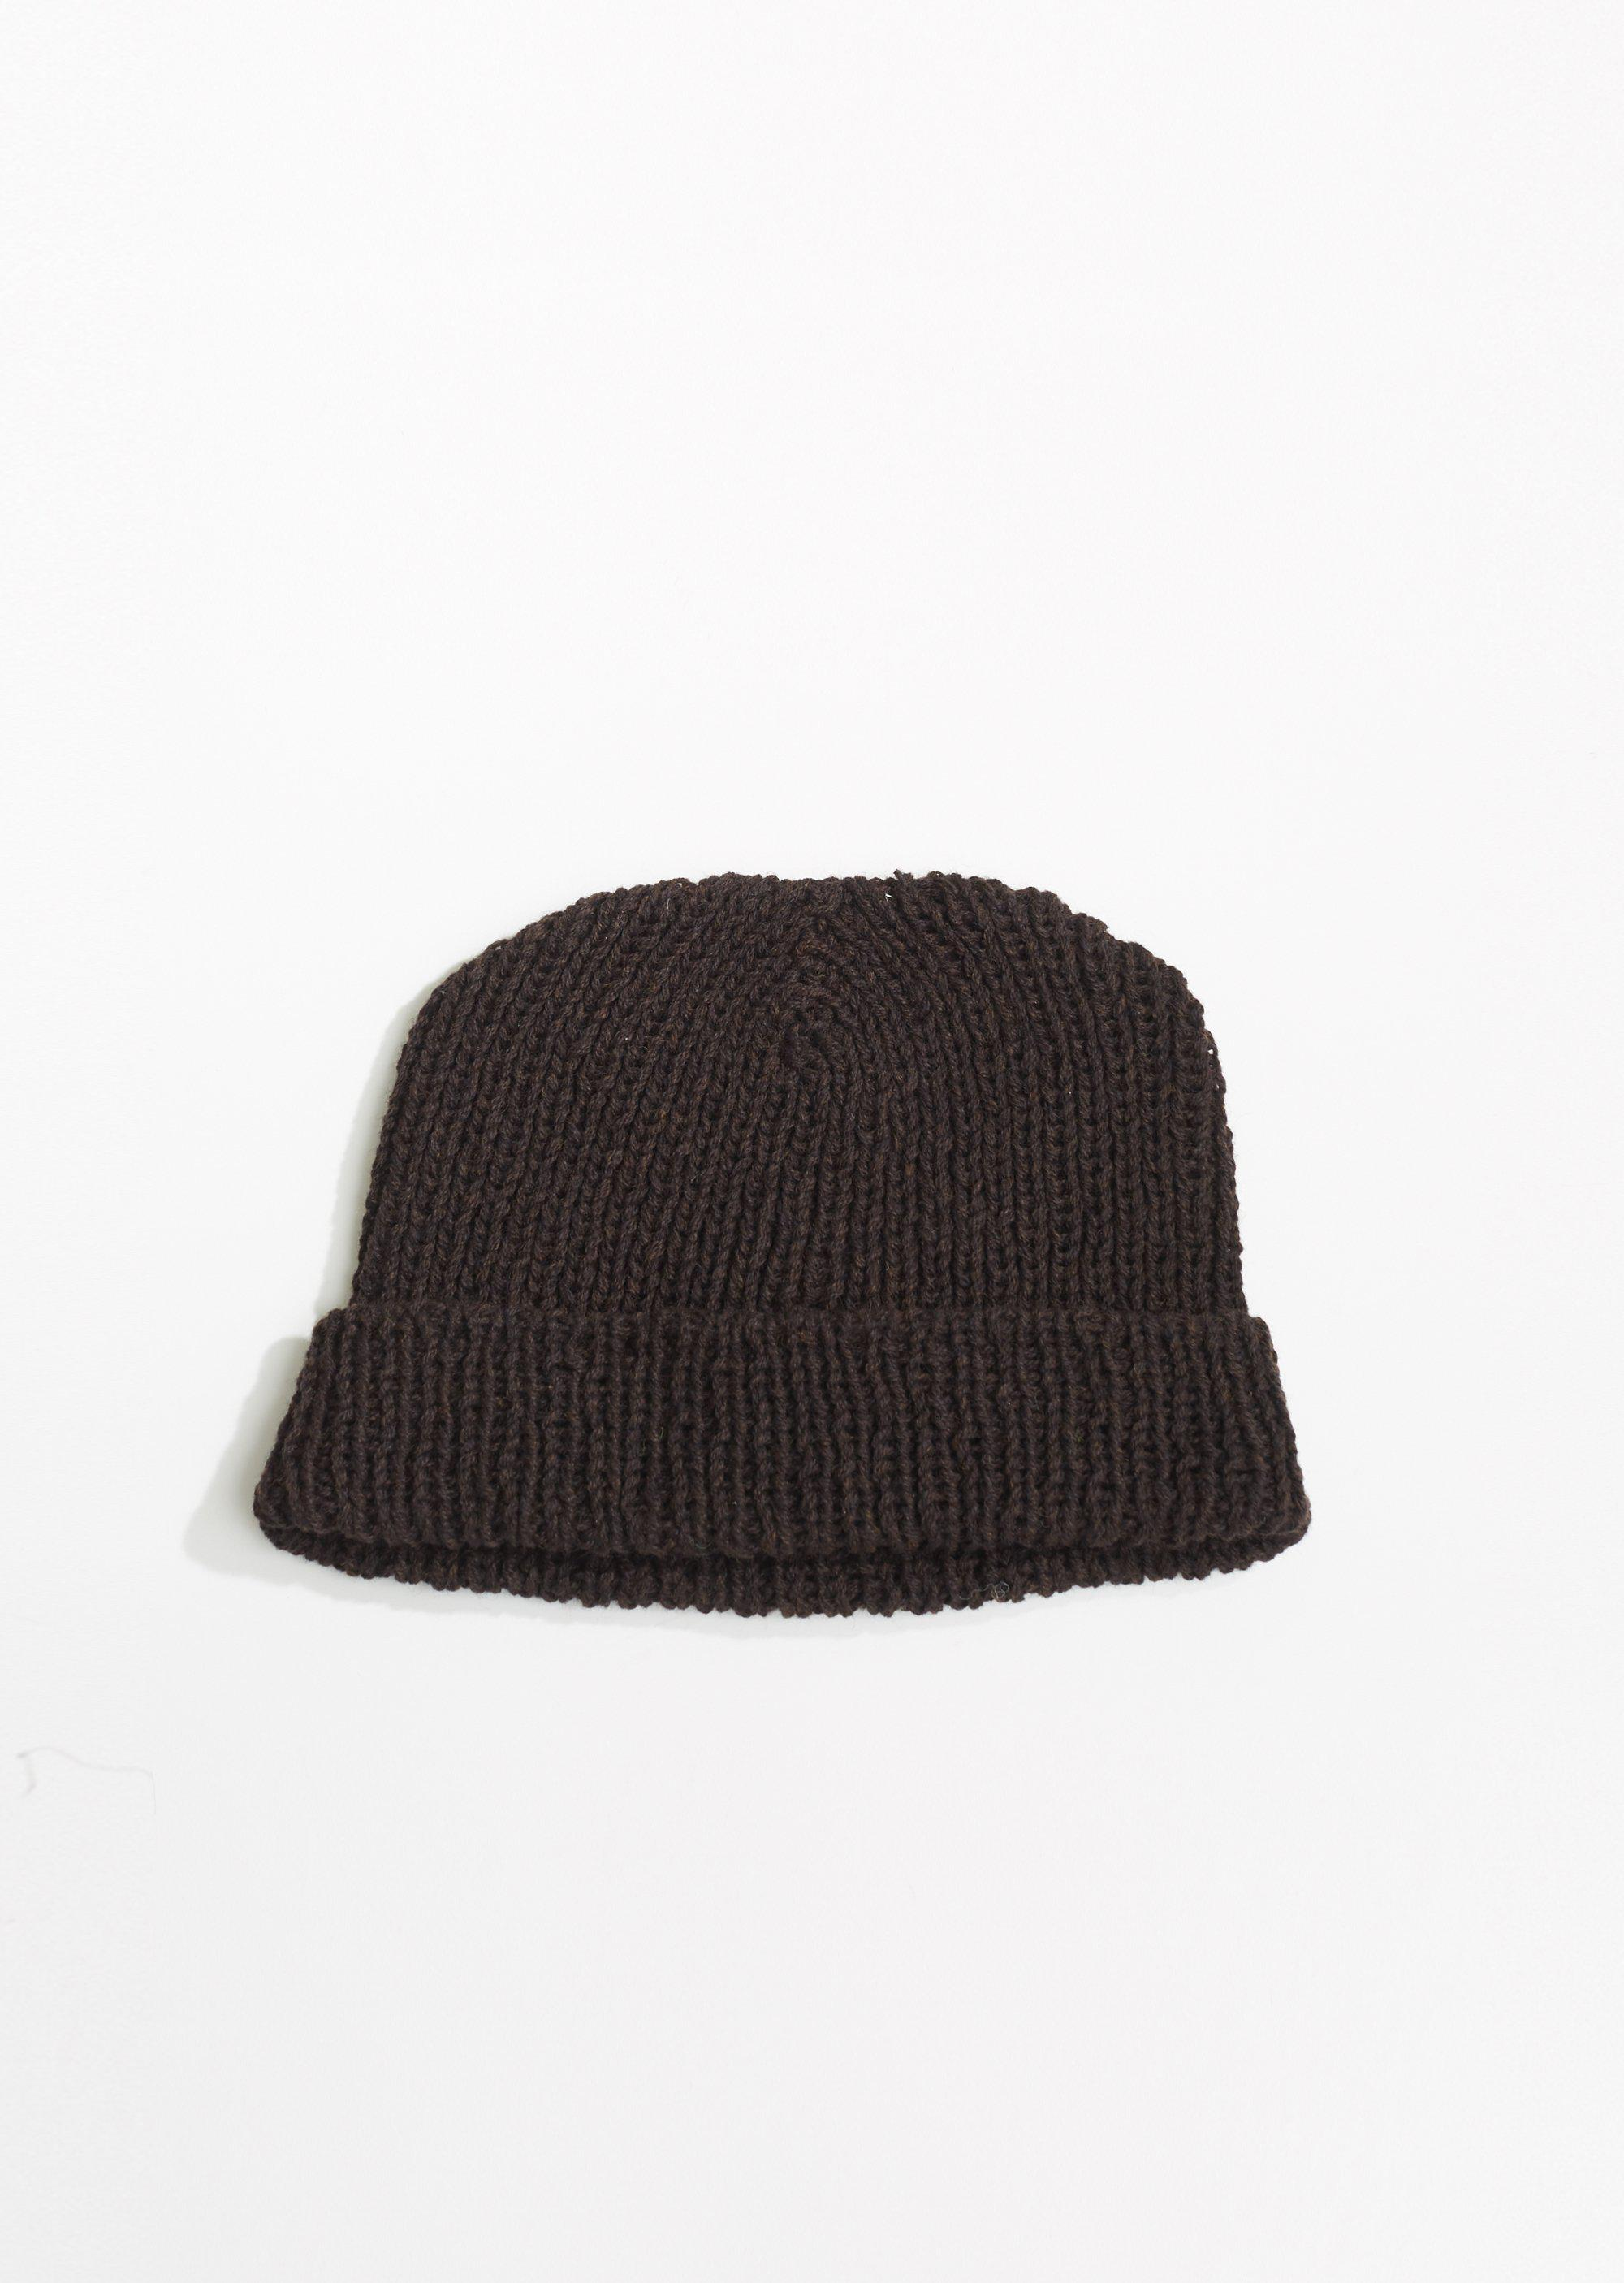 Camiel Fortgens Hand Knit Merino Beanie in Brown - Lyst 39eb89784e88